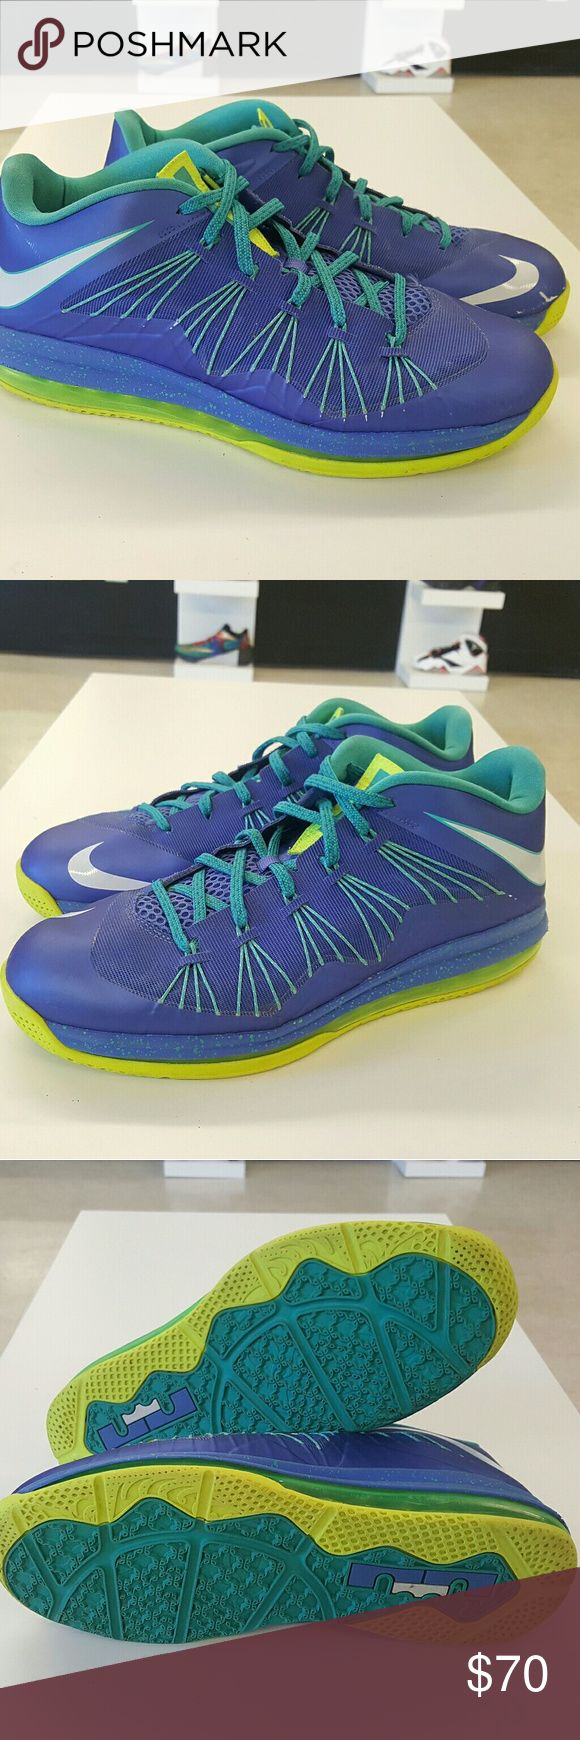 Nike LEBRON 10 Low Sprite Nike LEBRON 10 Low Sprite  Condition 8/10 Sz 11 No box Has two scuffs Same day shipping   100 % authentic Nike Shoes Sneakers